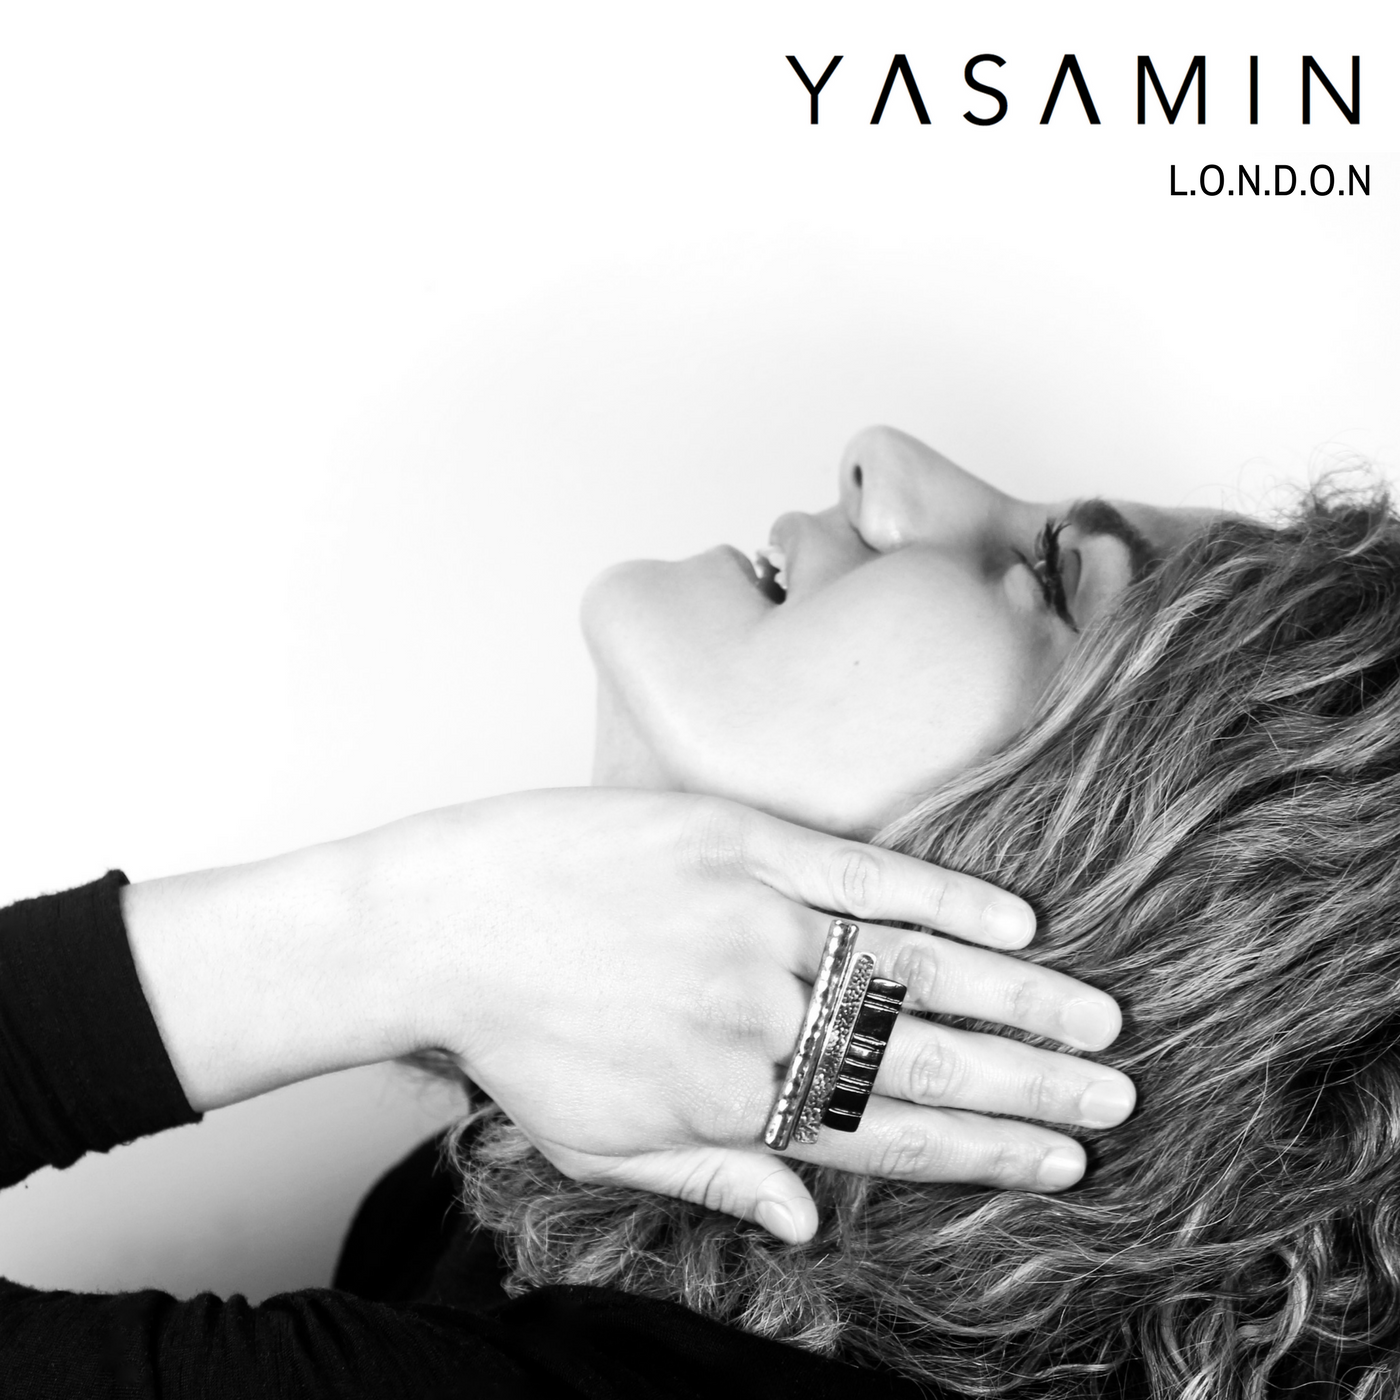 - Thank you for purchasing my art. It means a lot.Yasamin xx